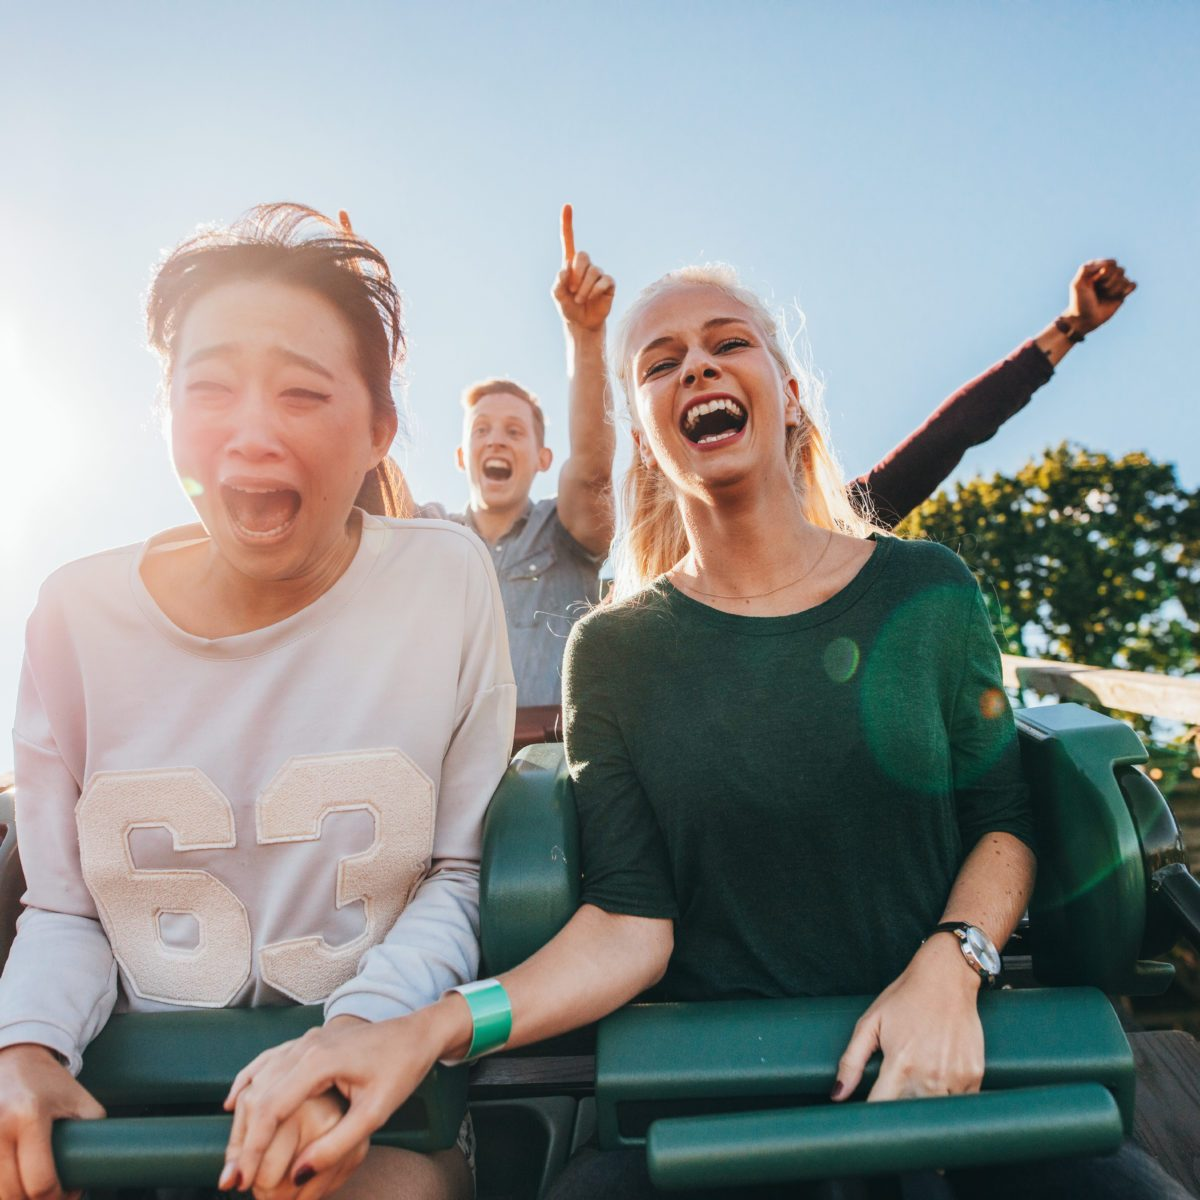 The Most Amazing Theme Park Attractions You'll Want Need See in 2020